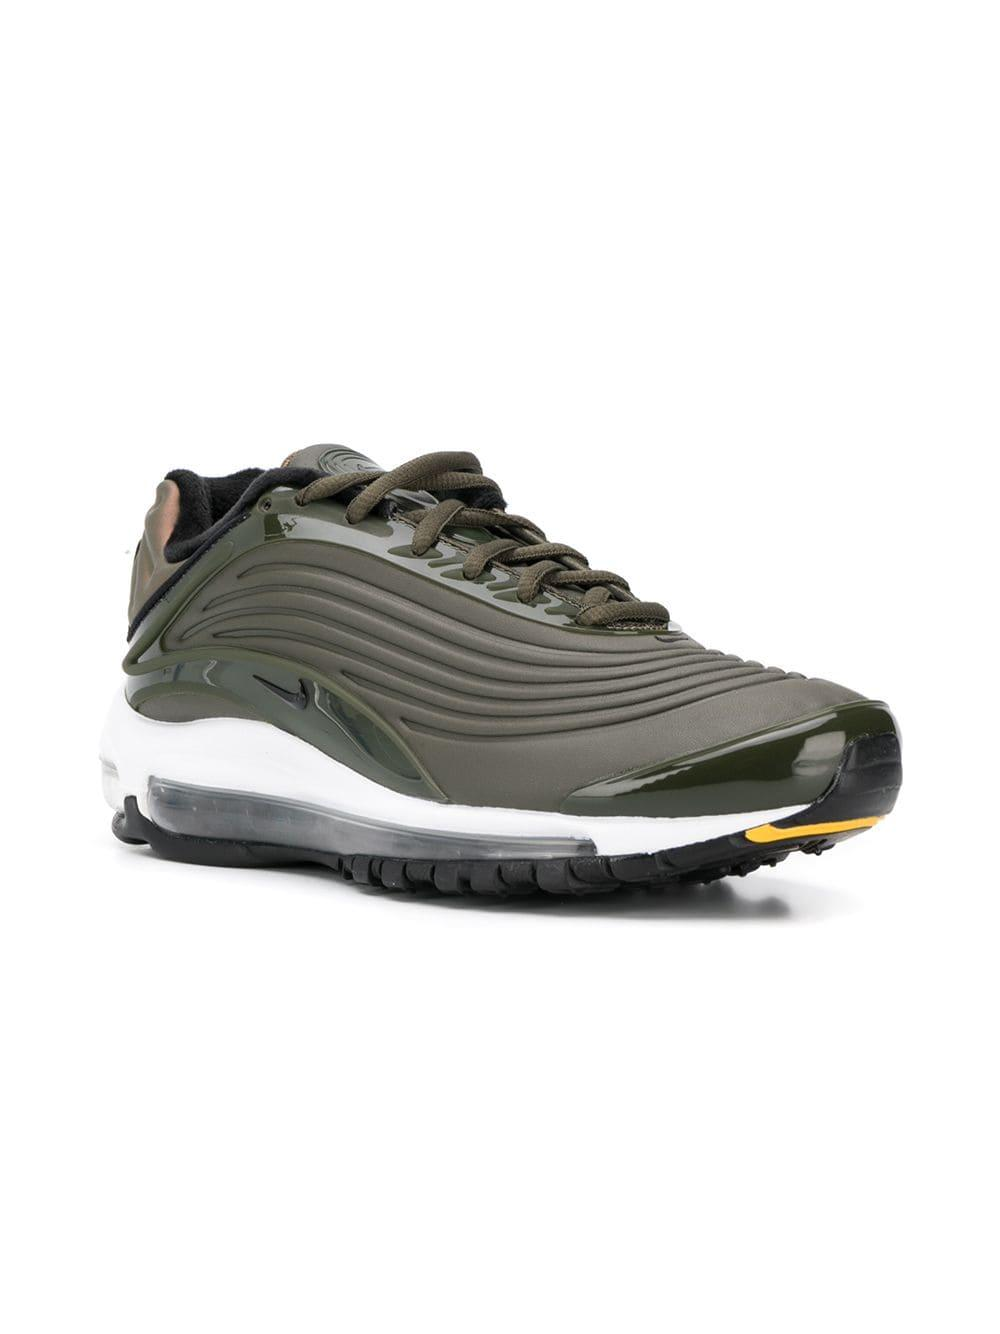 718ca27064 Nike Air Max Deluxe Se Sneakers in Green for Men - Lyst